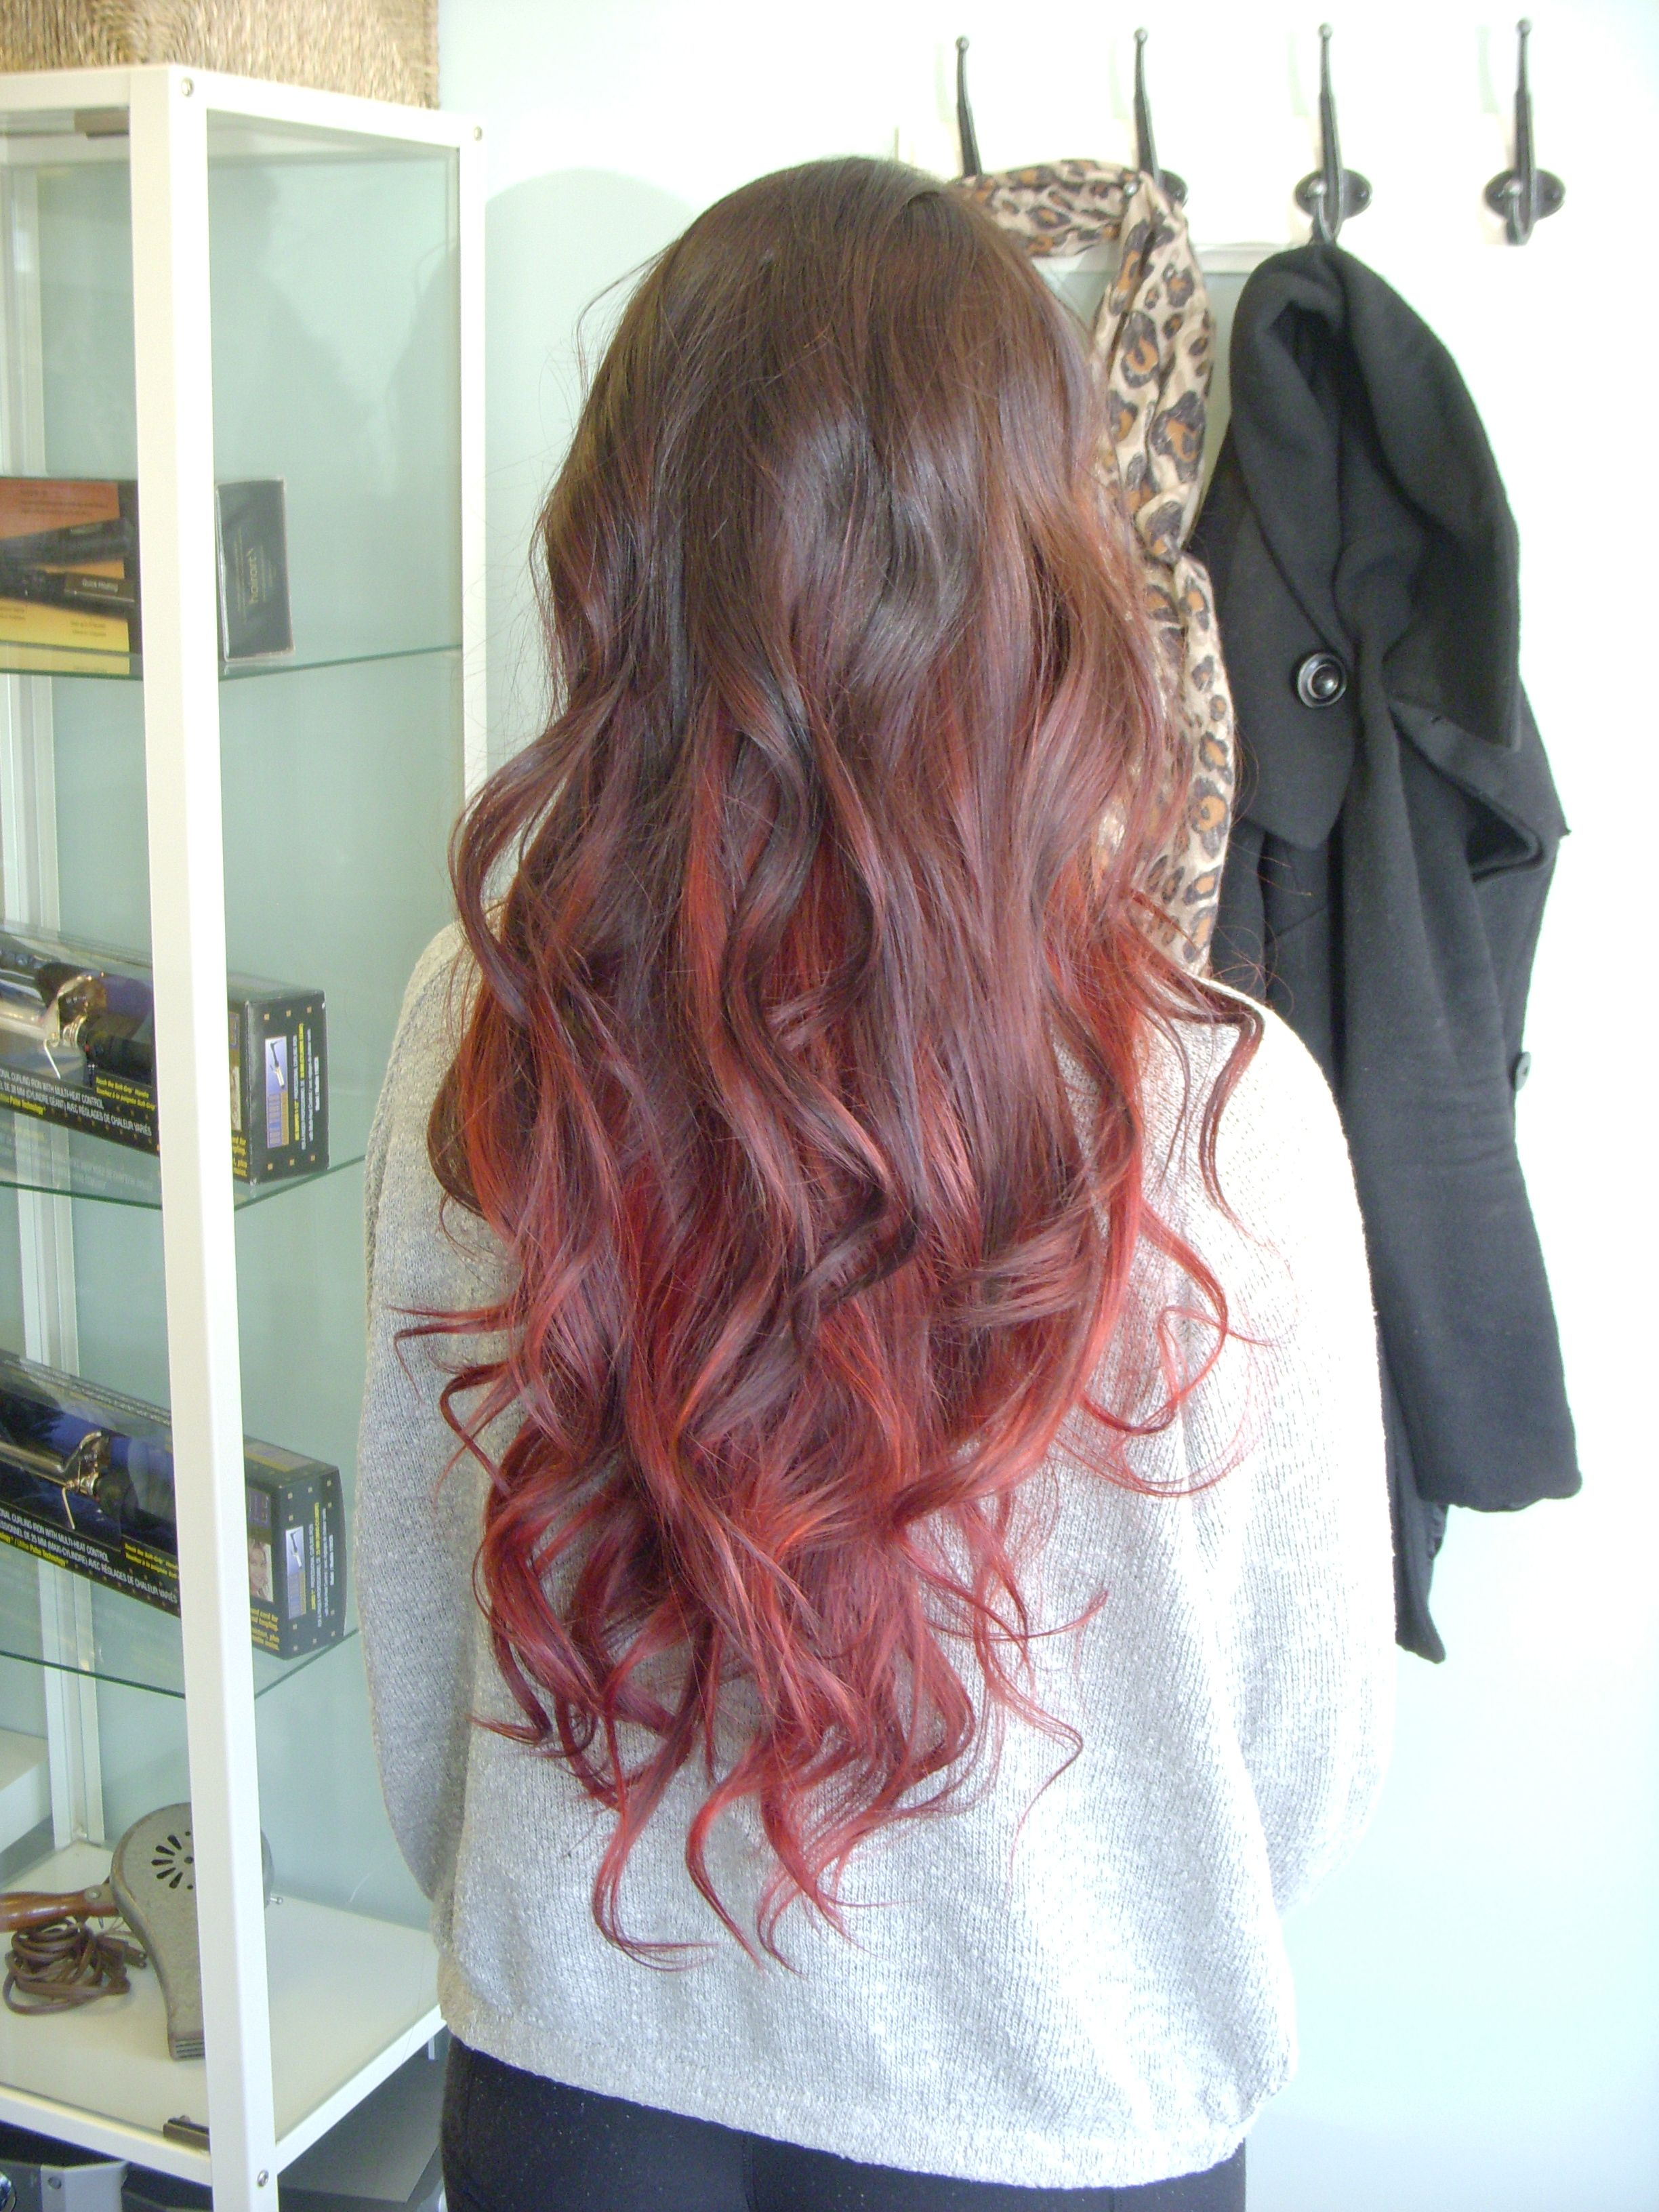 I Want To Try This Once My Hair Grows Enough. Though My